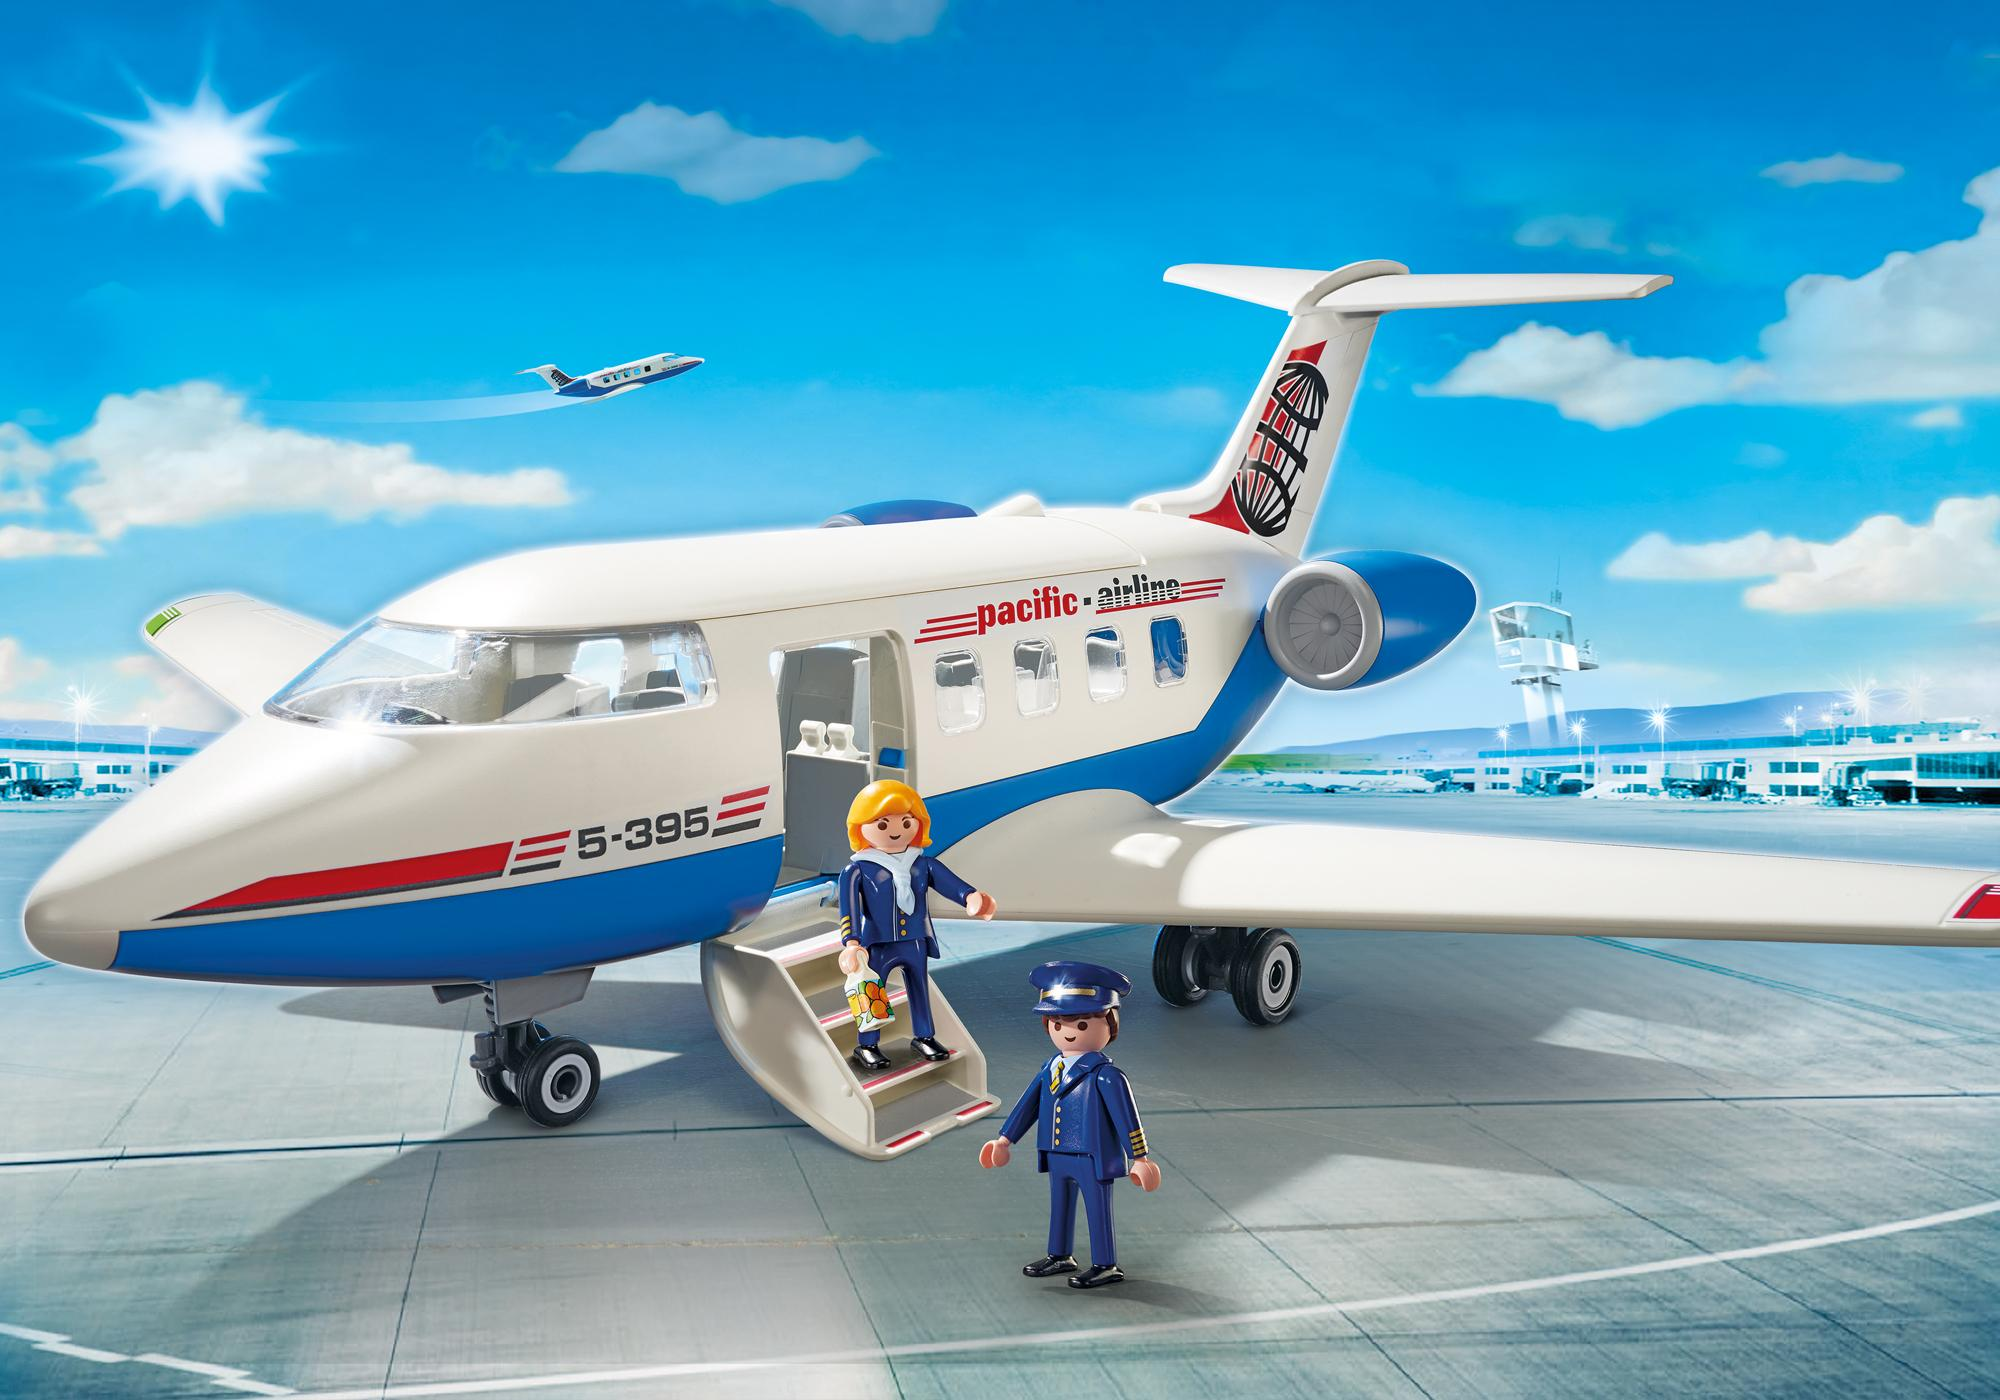 Playmobil: Man = pilot Woman = stewardess